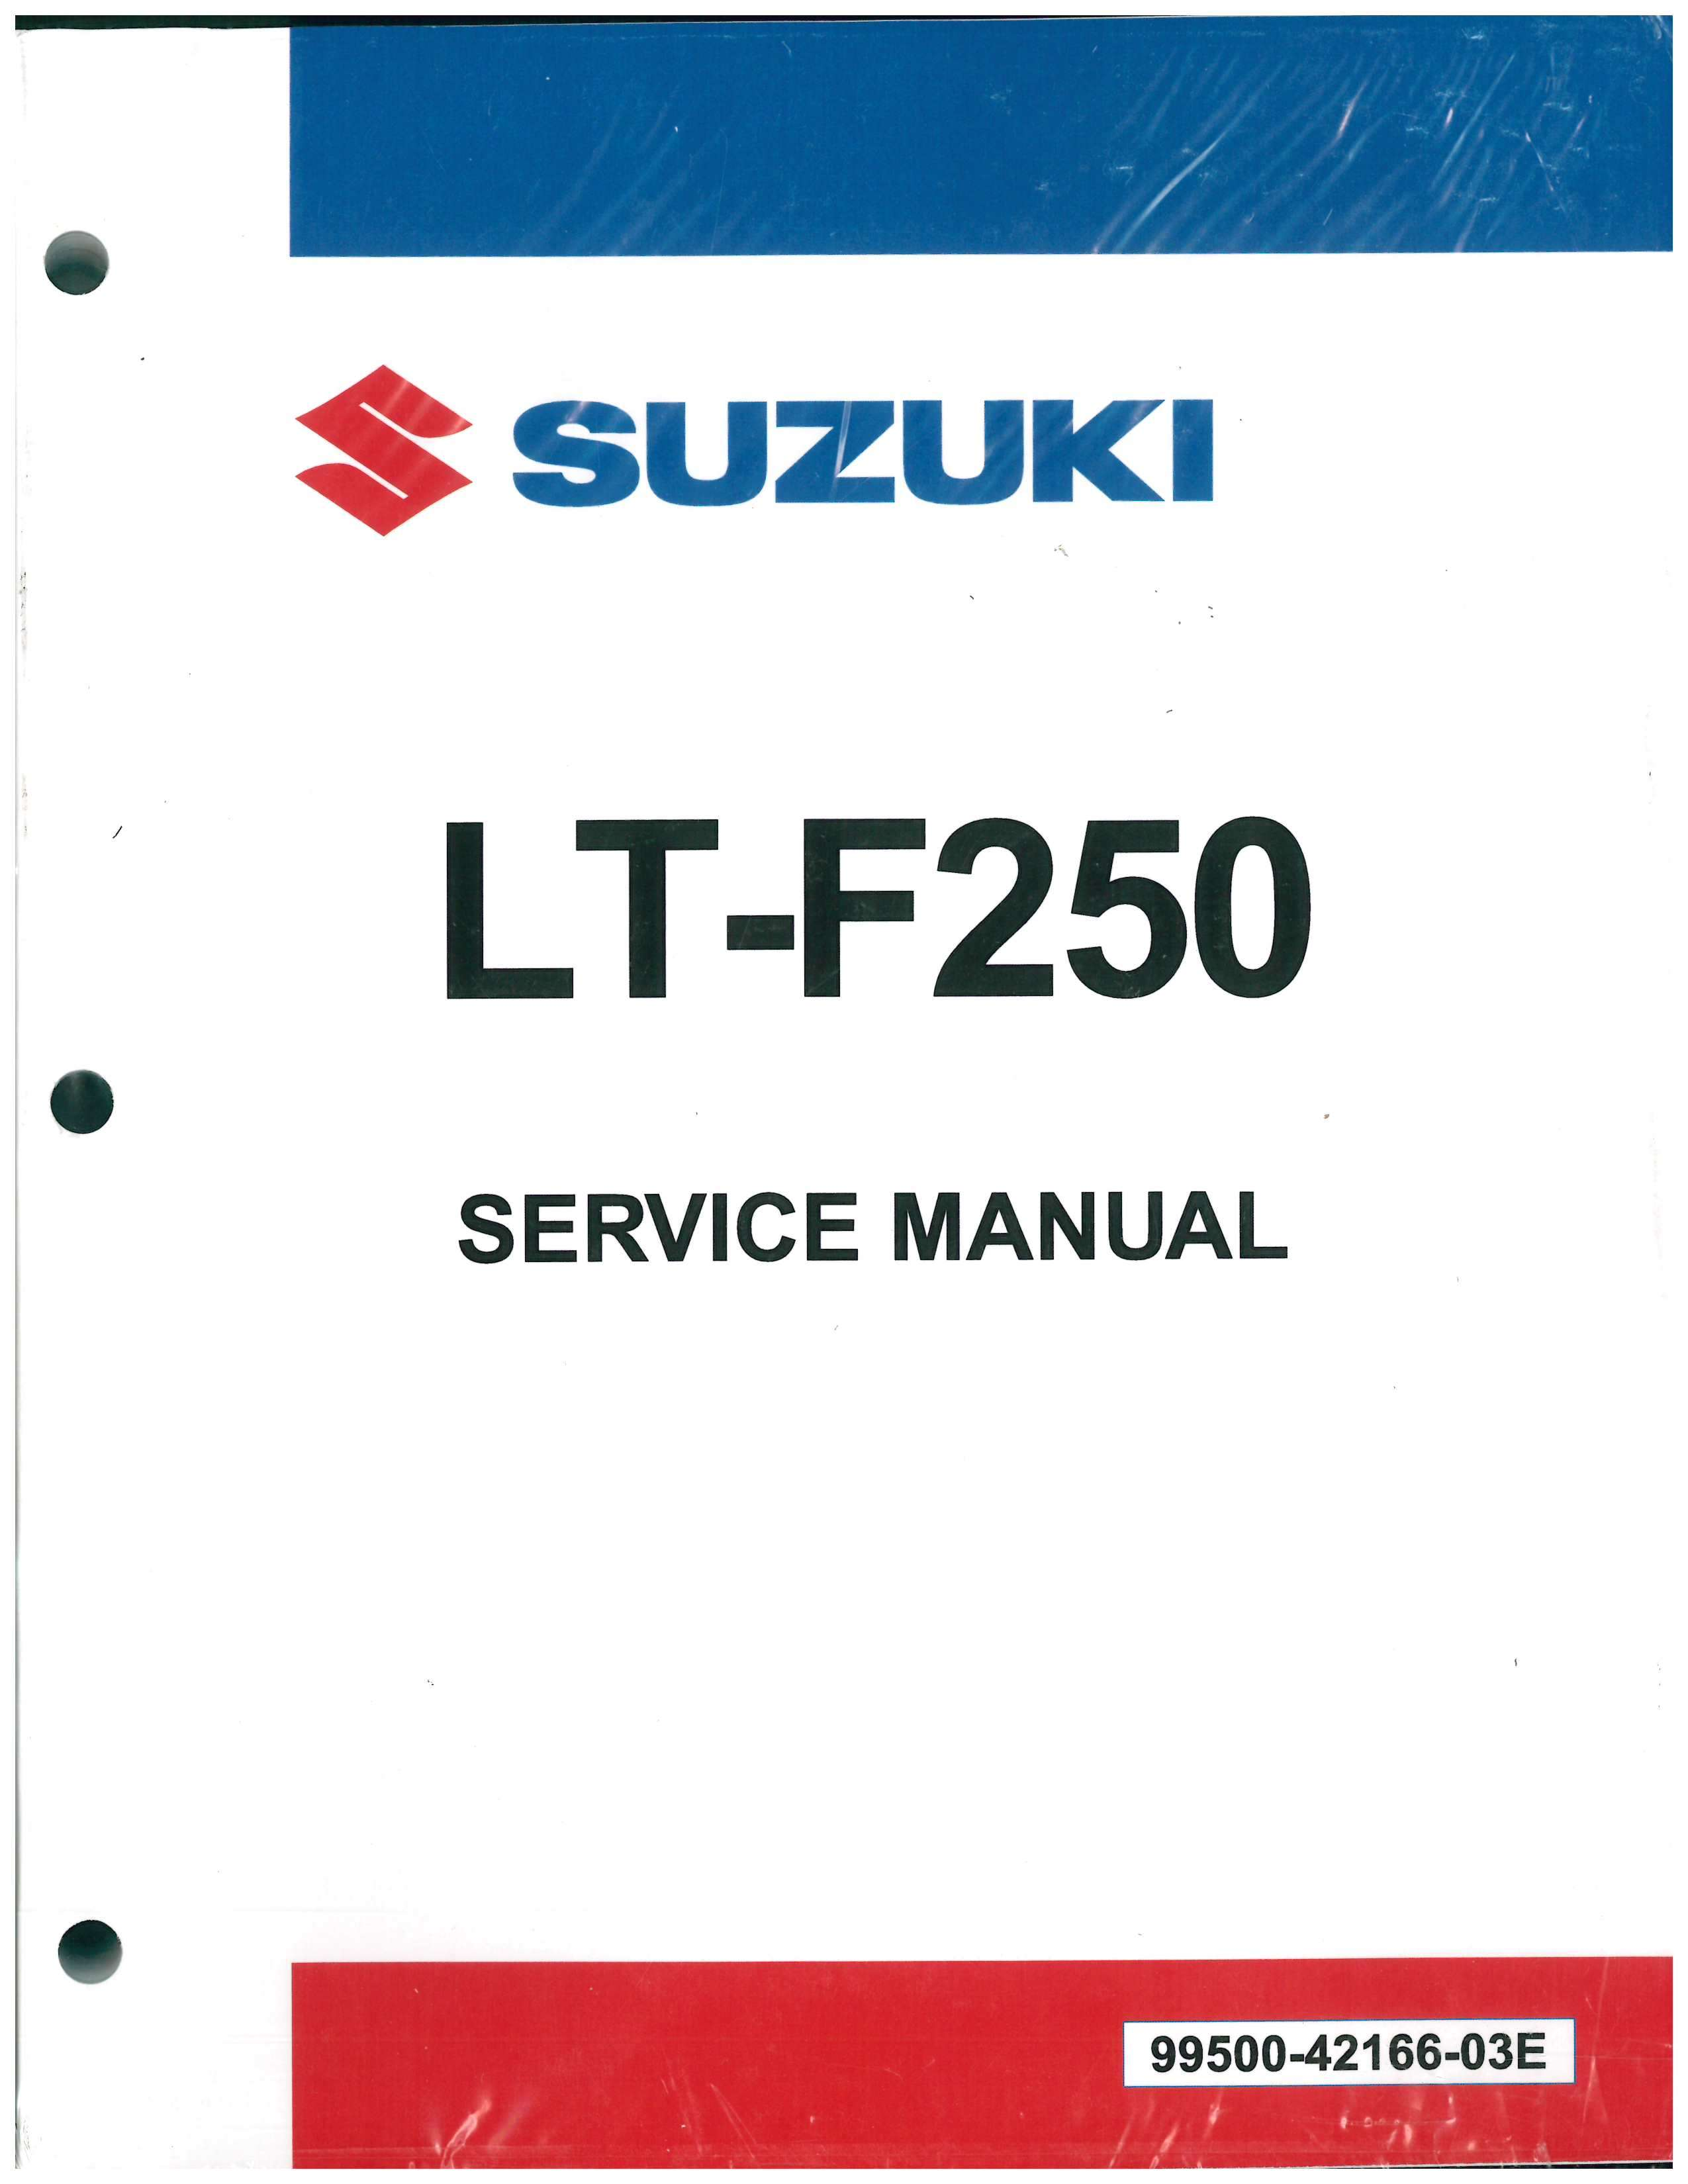 2002-2014 Suzuki LT-F250 Ozark 2WD ATV Service Manual on troubleshooting diagrams, internet of things diagrams, honda motorcycle repair diagrams, sincgars radio configurations diagrams, switch diagrams, series and parallel circuits diagrams, battery diagrams, snatch block diagrams, friendship bracelet diagrams, electrical diagrams, hvac diagrams, pinout diagrams, transformer diagrams, led circuit diagrams, gmc fuse box diagrams, lighting diagrams, electronic circuit diagrams, motor diagrams, engine diagrams, smart car diagrams,